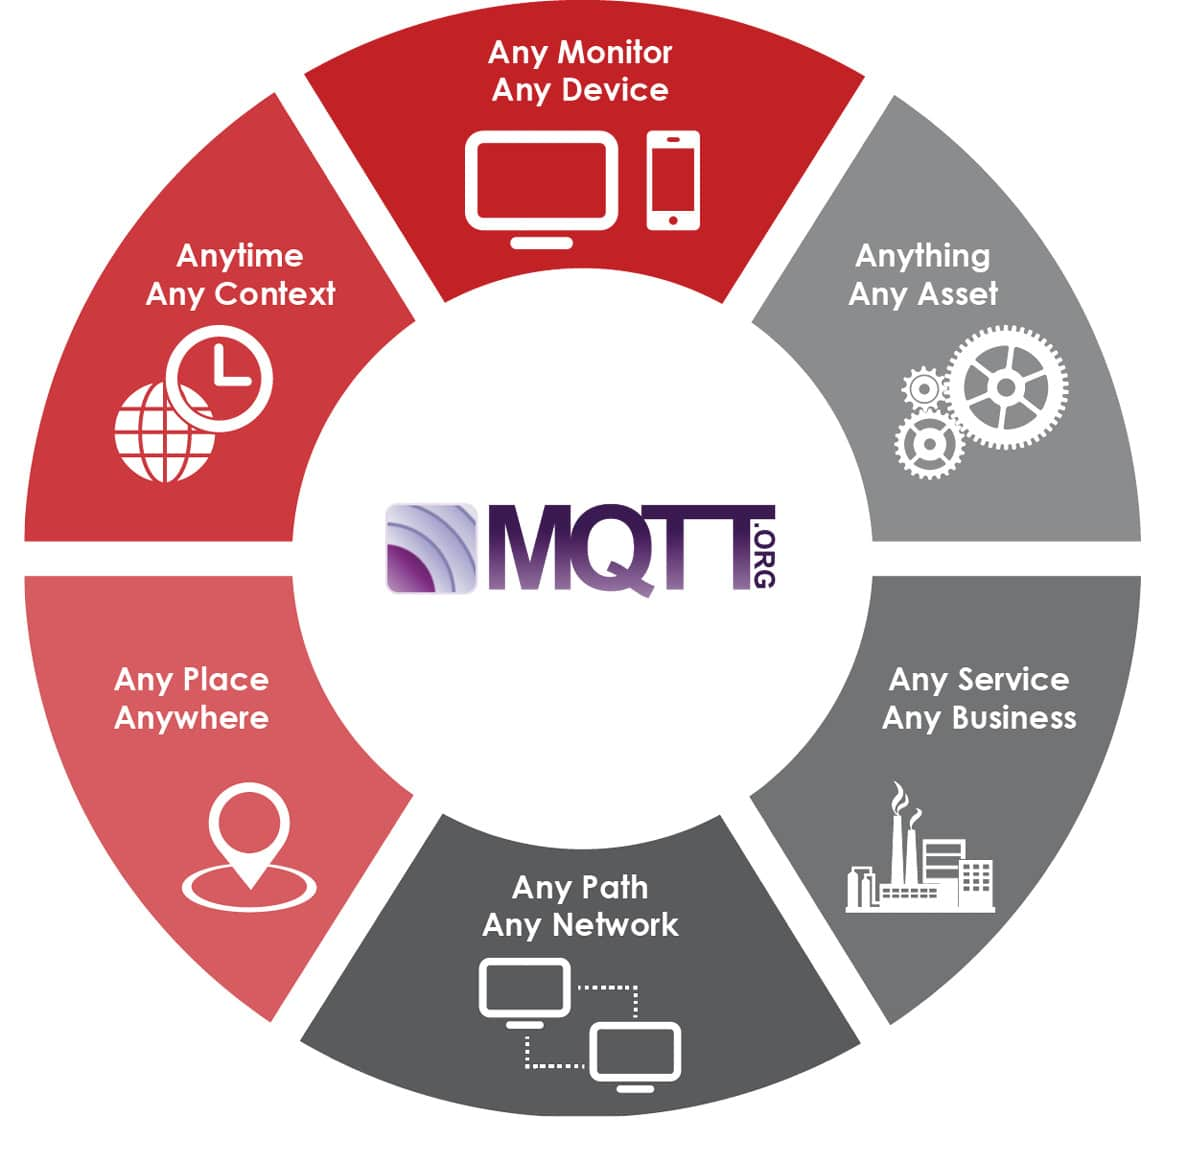 MQTT: Get started with IoT protocols - Open Source For You